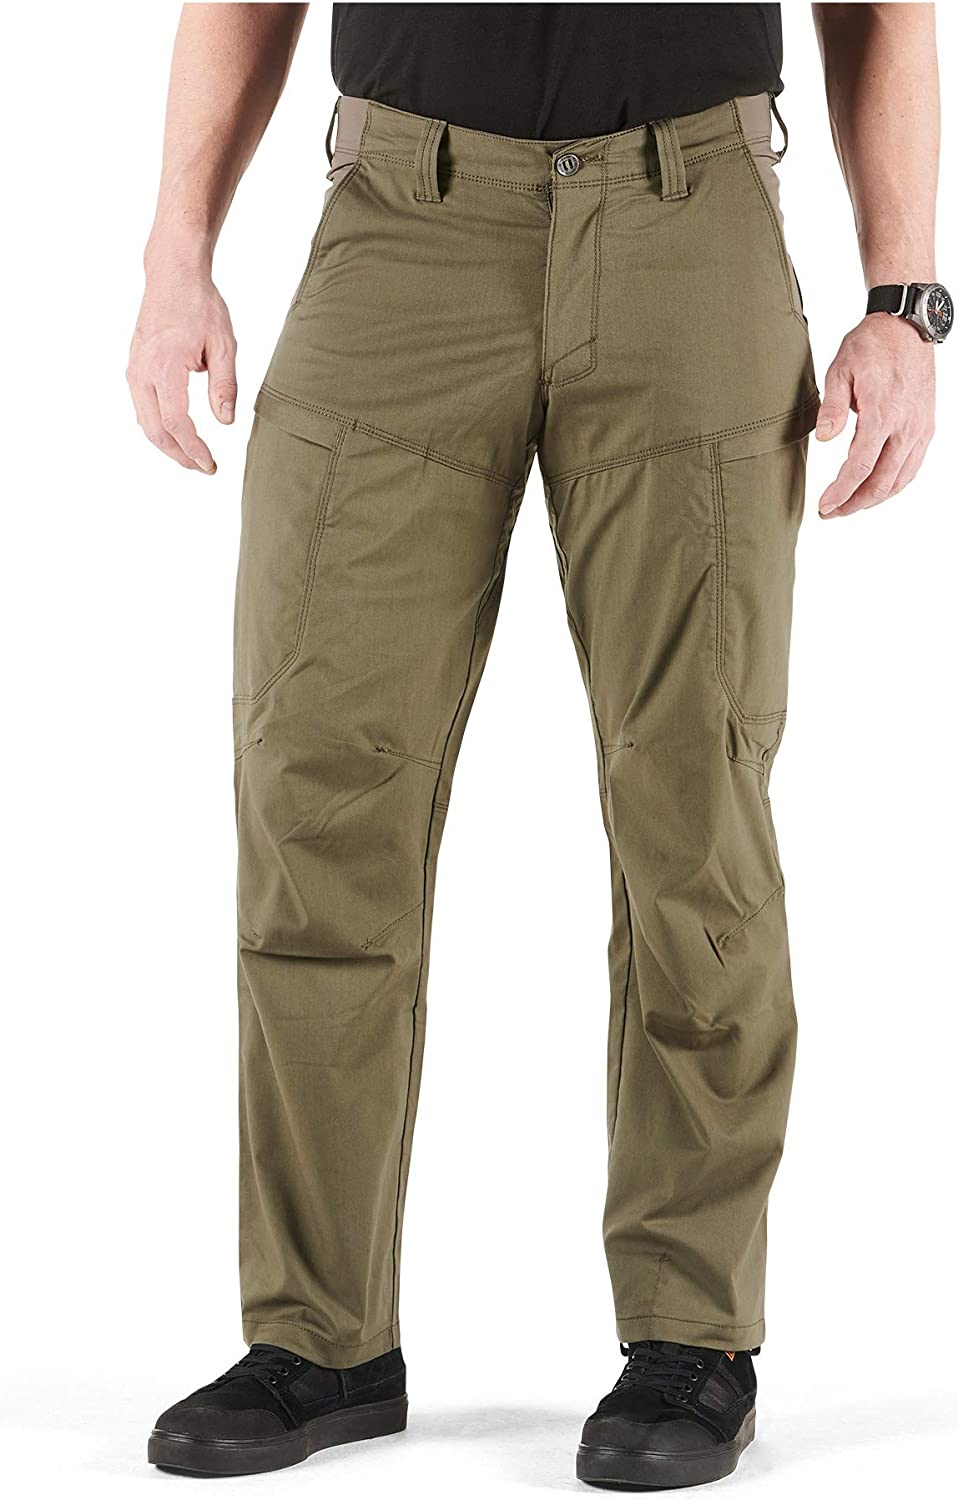 5.11 Sales results No. 1 Tactical Men's Apex Cargo Stretch Easy-to-use Fabr Flex-Tac Pants Work